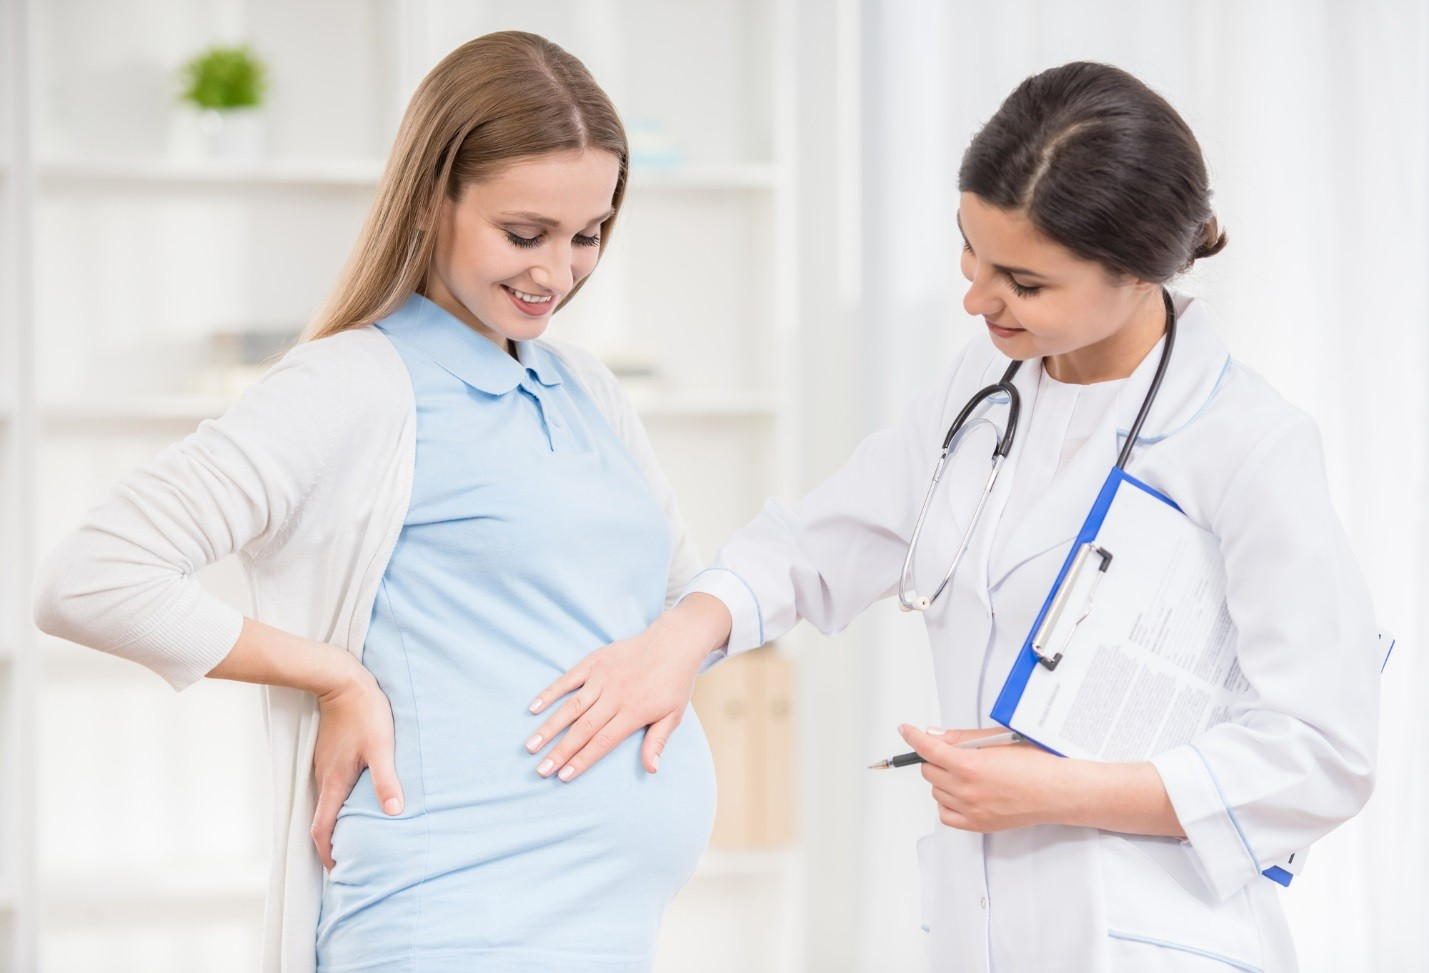 Some Important Points to Keep in Mind when you are Pregnant